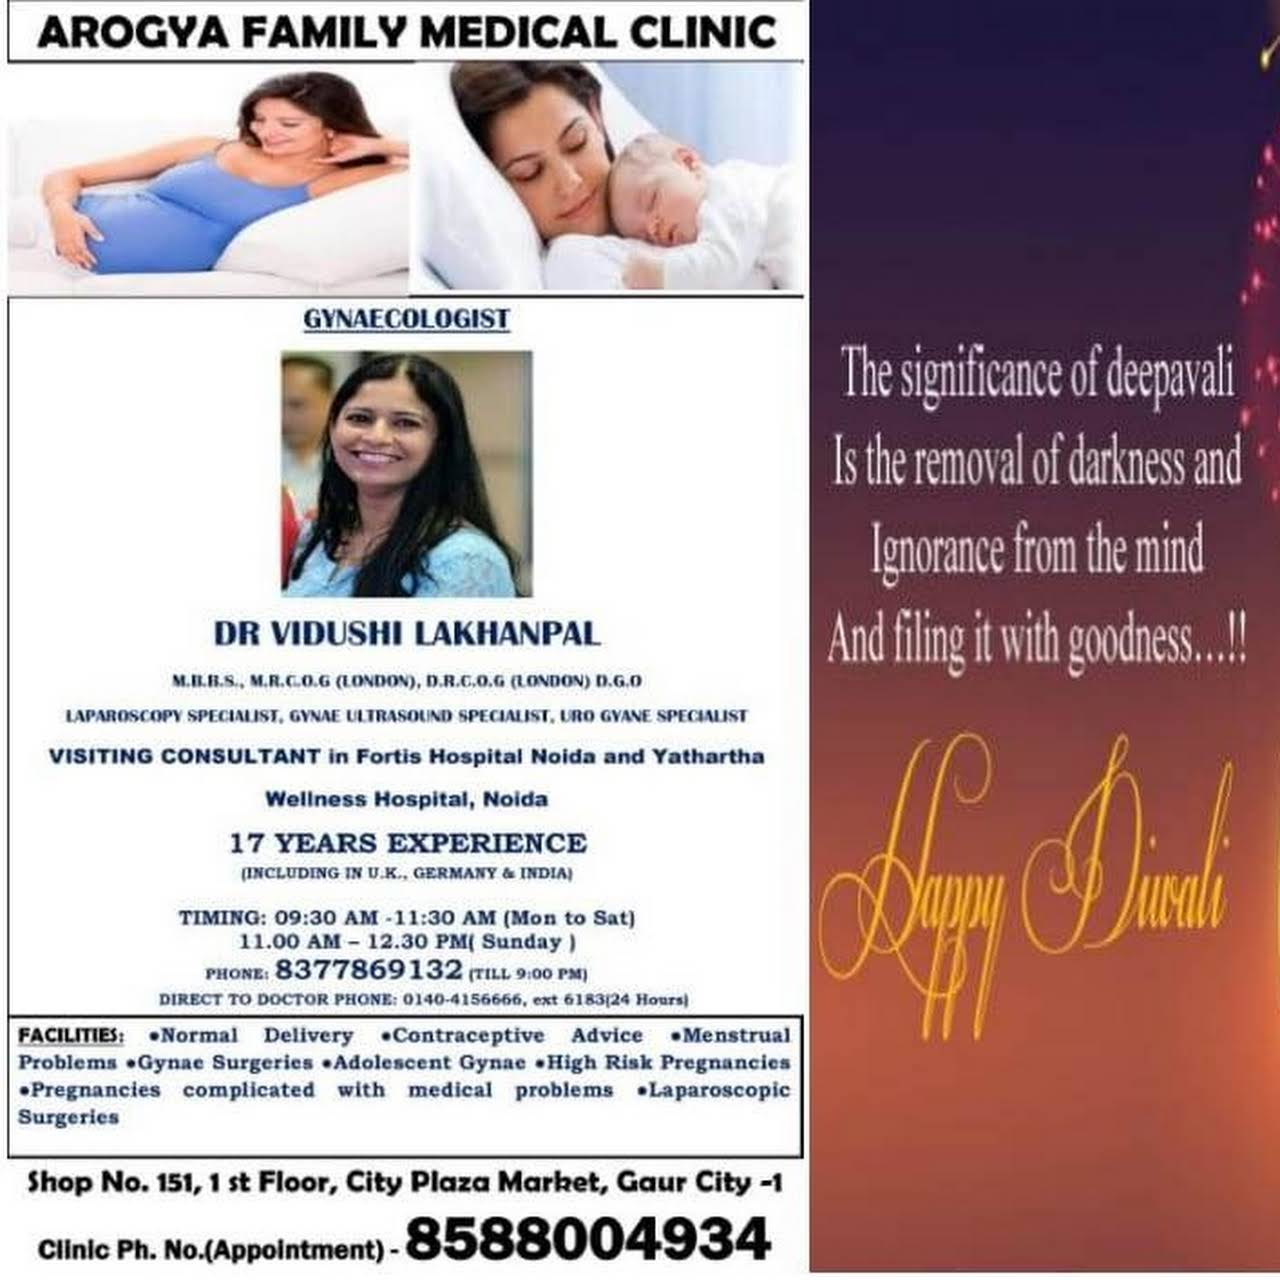 Dr Vidushi Lakhanpal - Best Gynae in Gaur City |Gynaecologist in